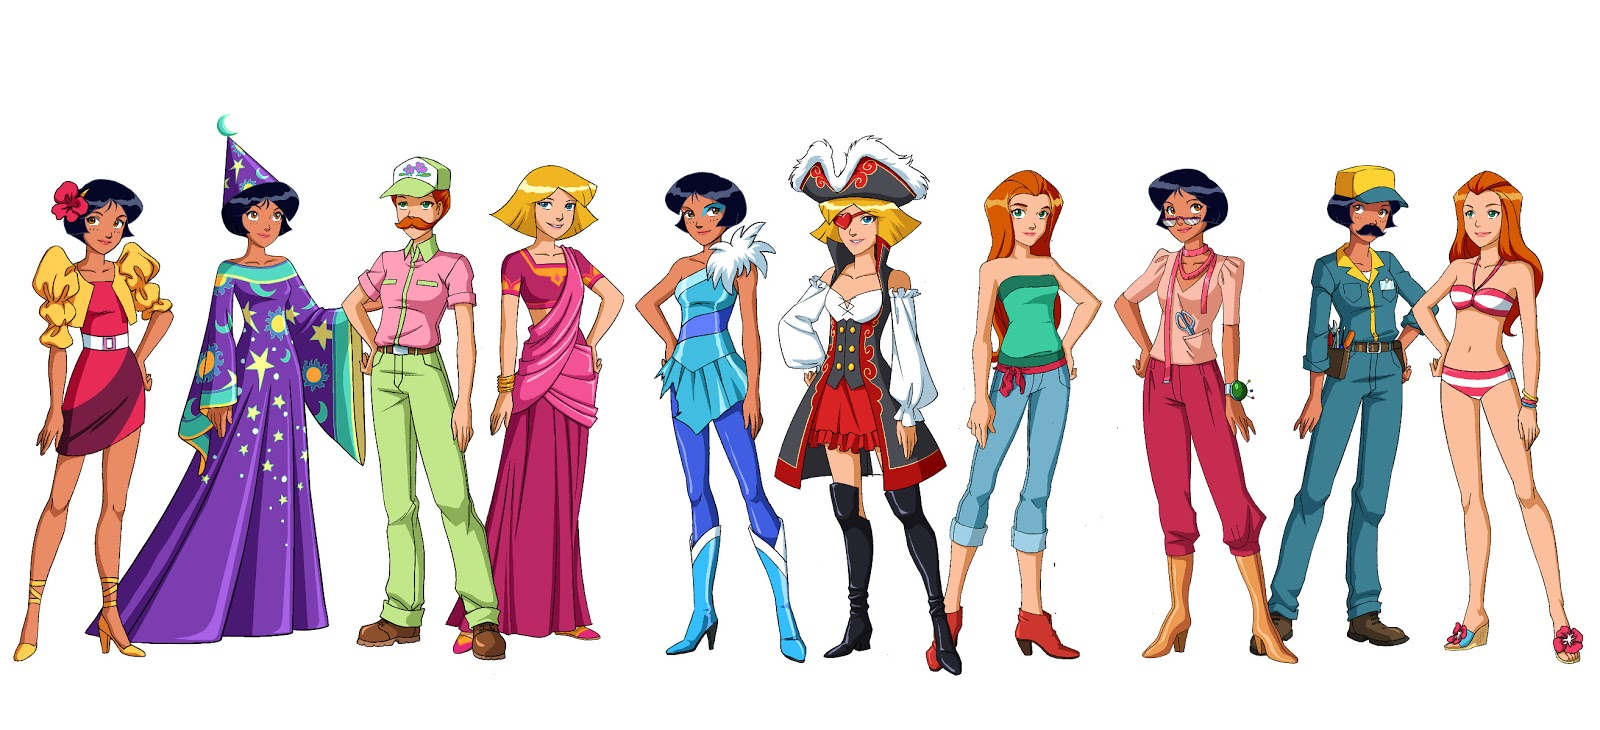 Caroline frydlender animation - Dessin anime de totally spies ...